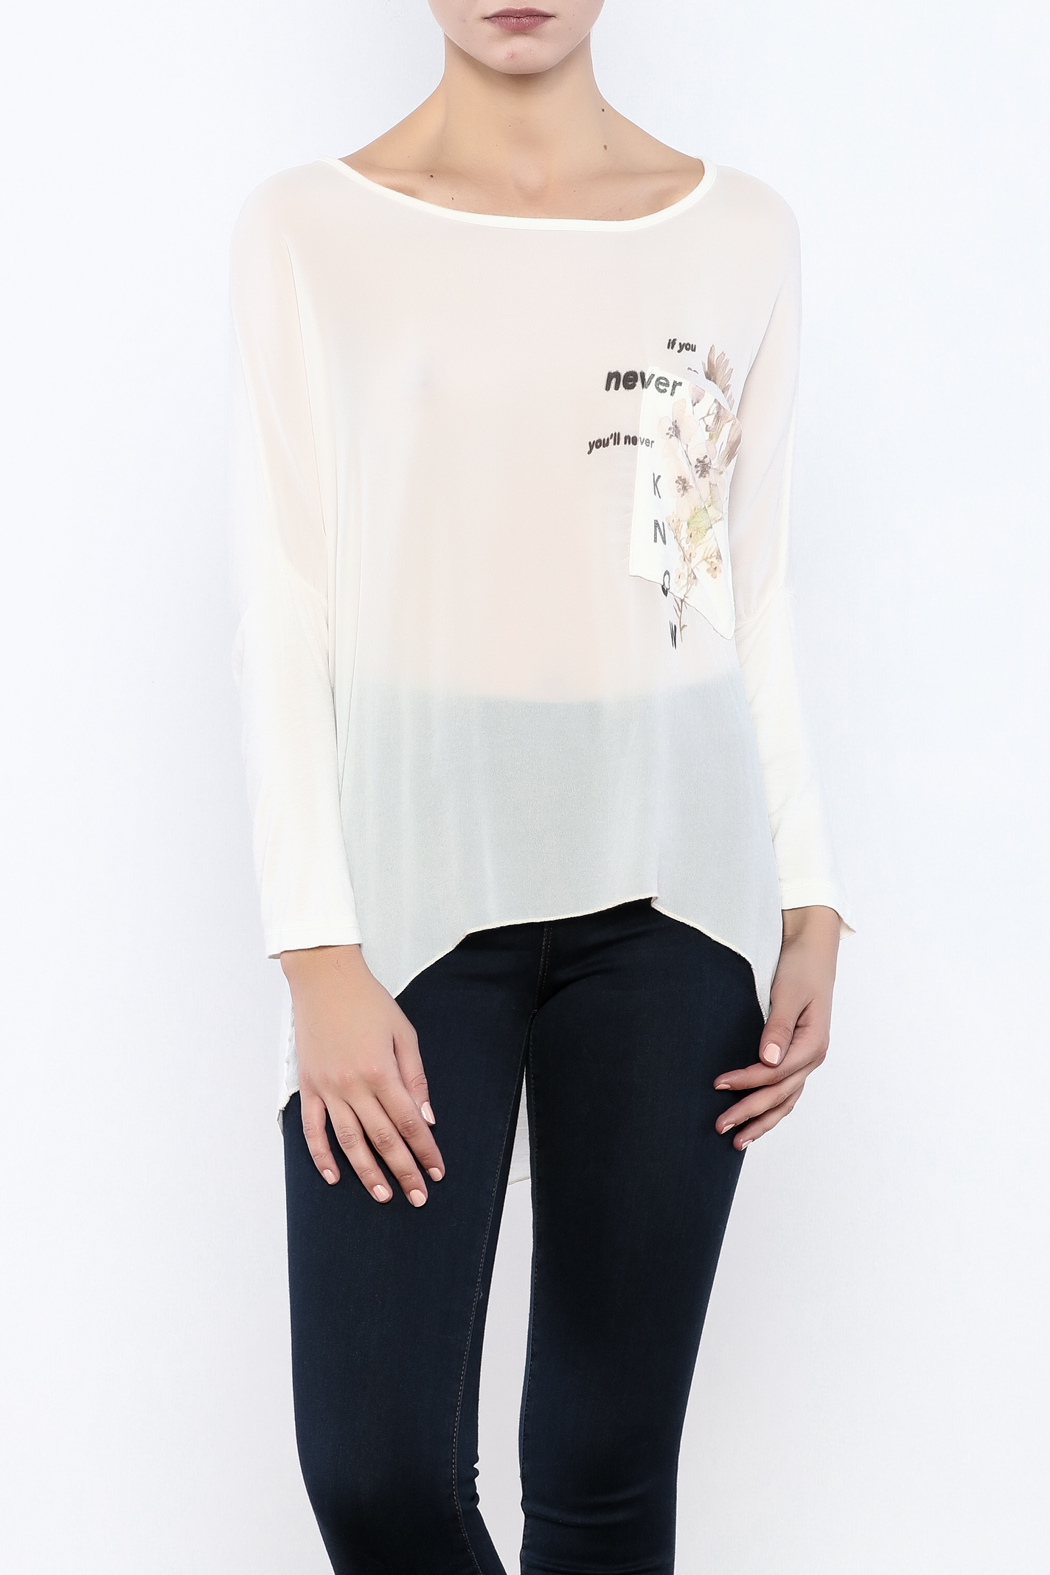 Femme Fatale Printed Pocket Cream Top - Main Image